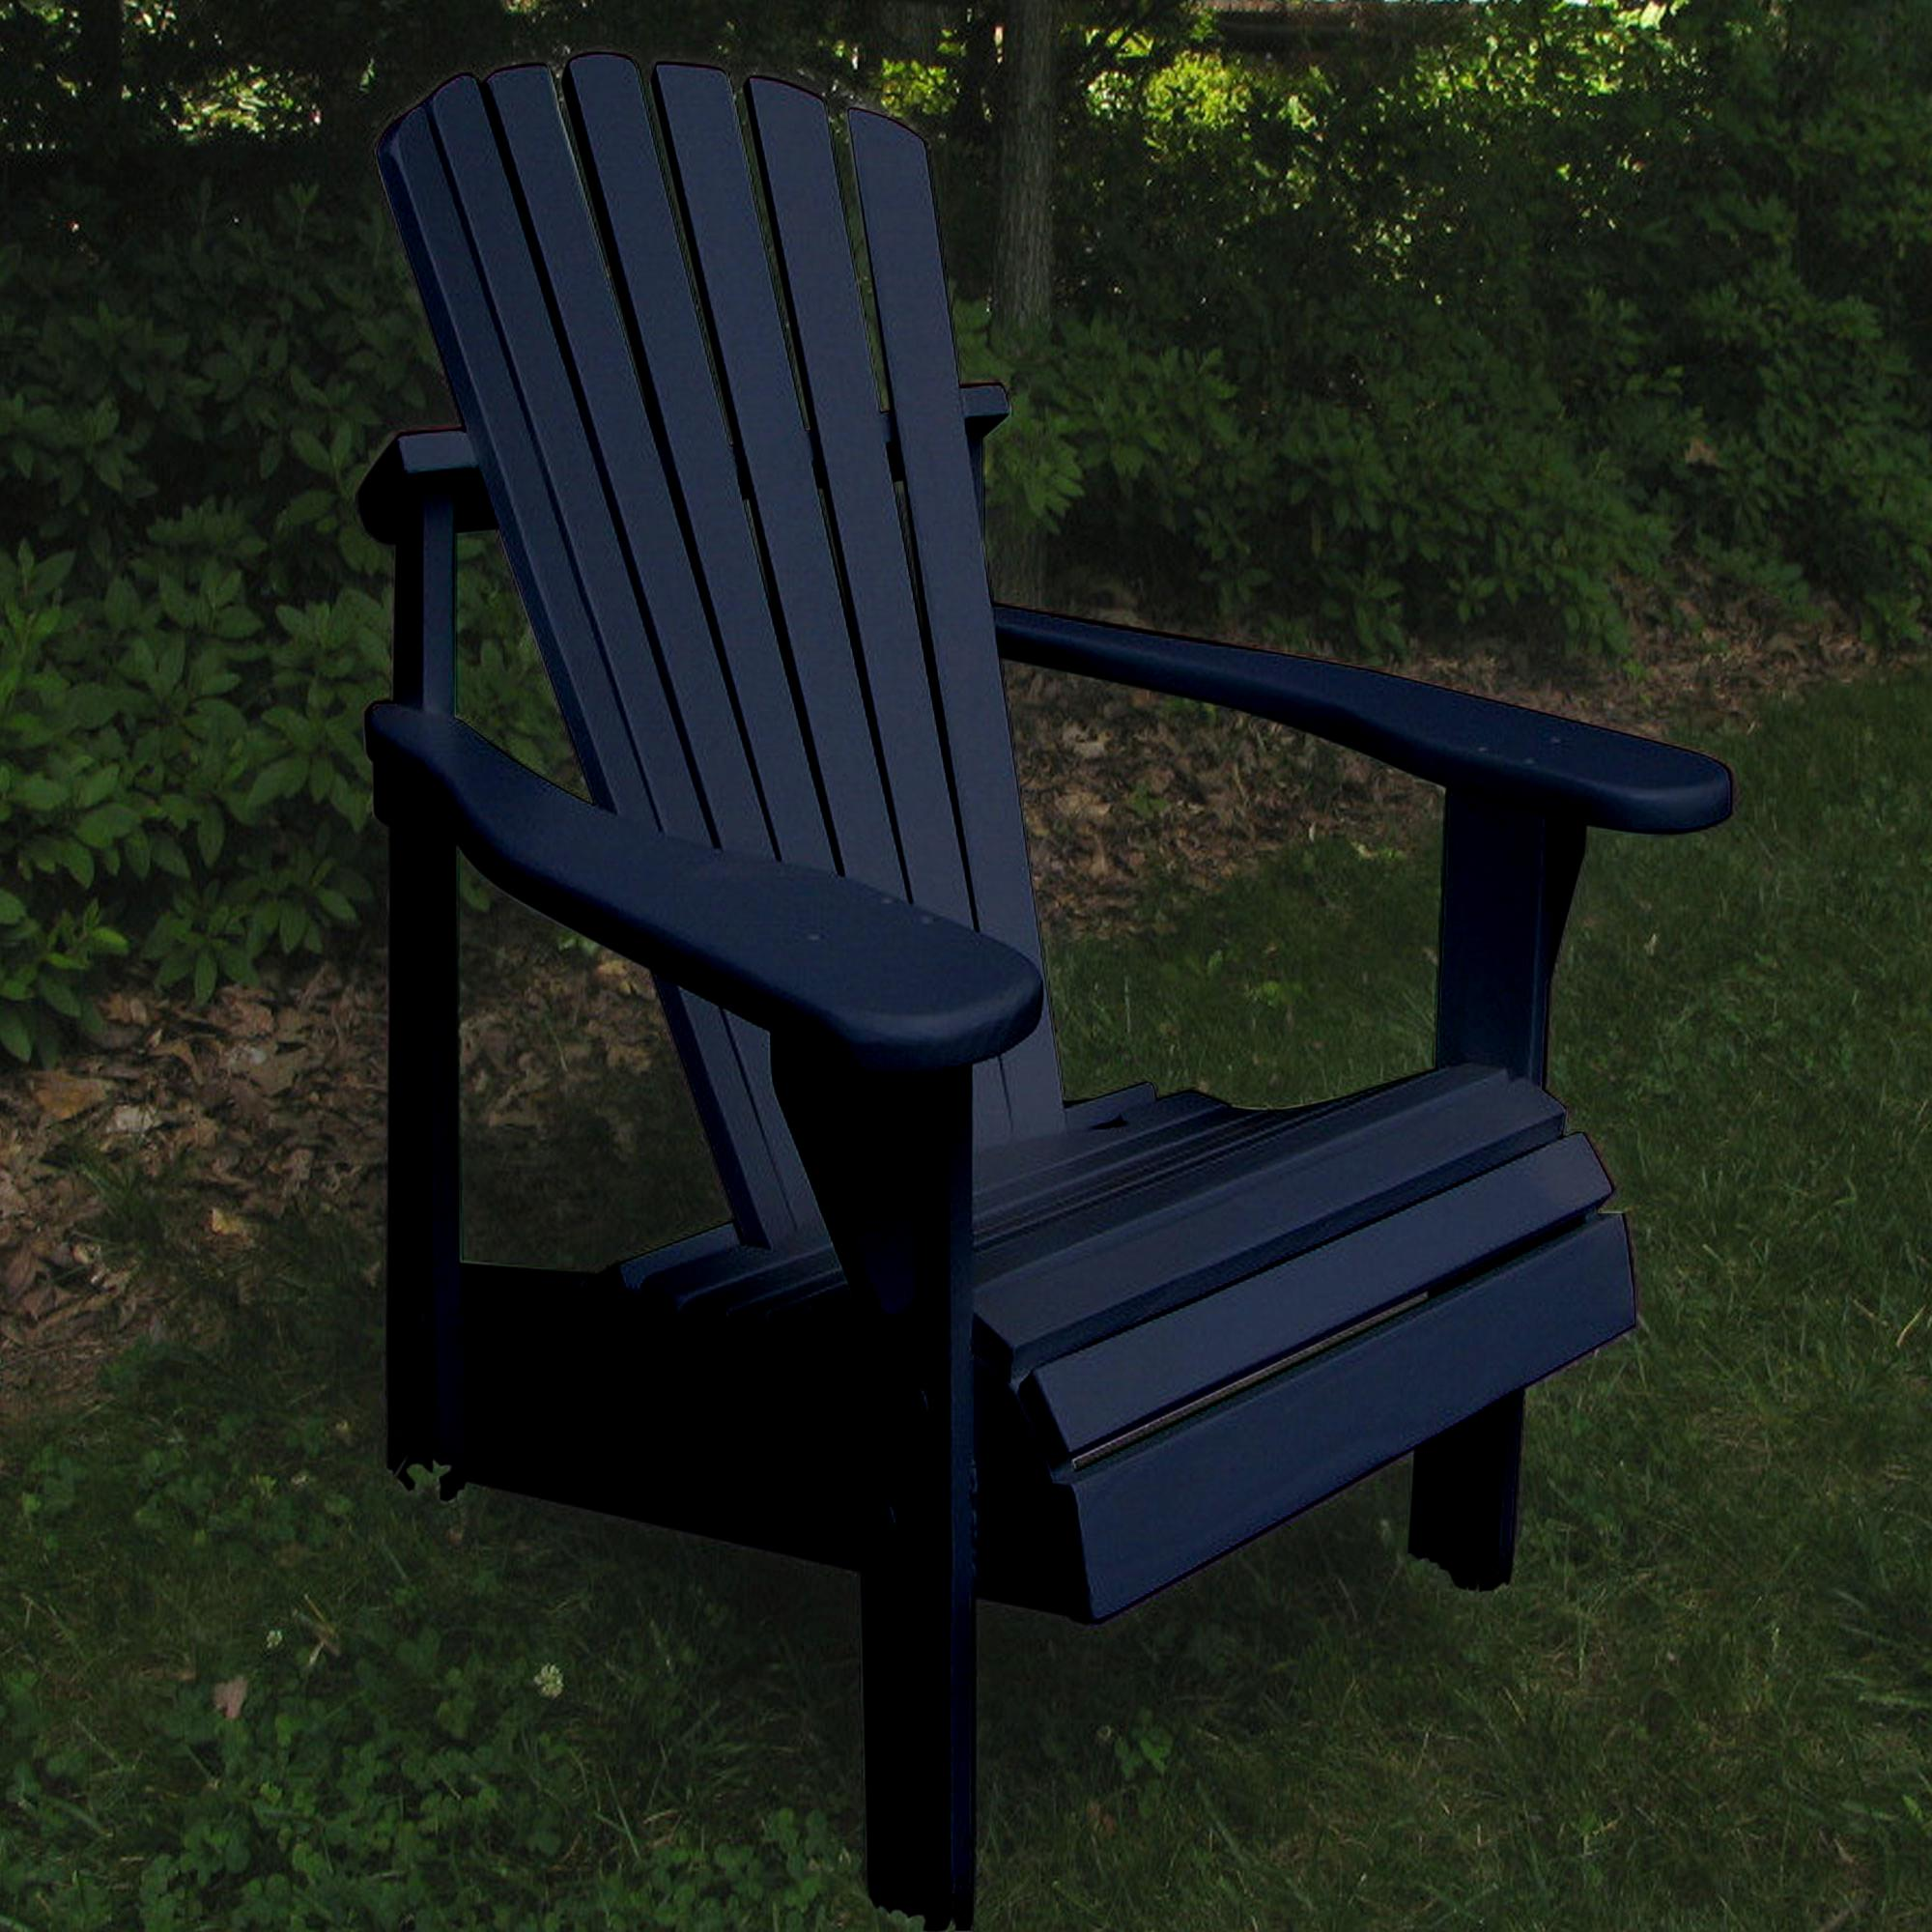 Pair Of Adirondack Chairs With Cushions